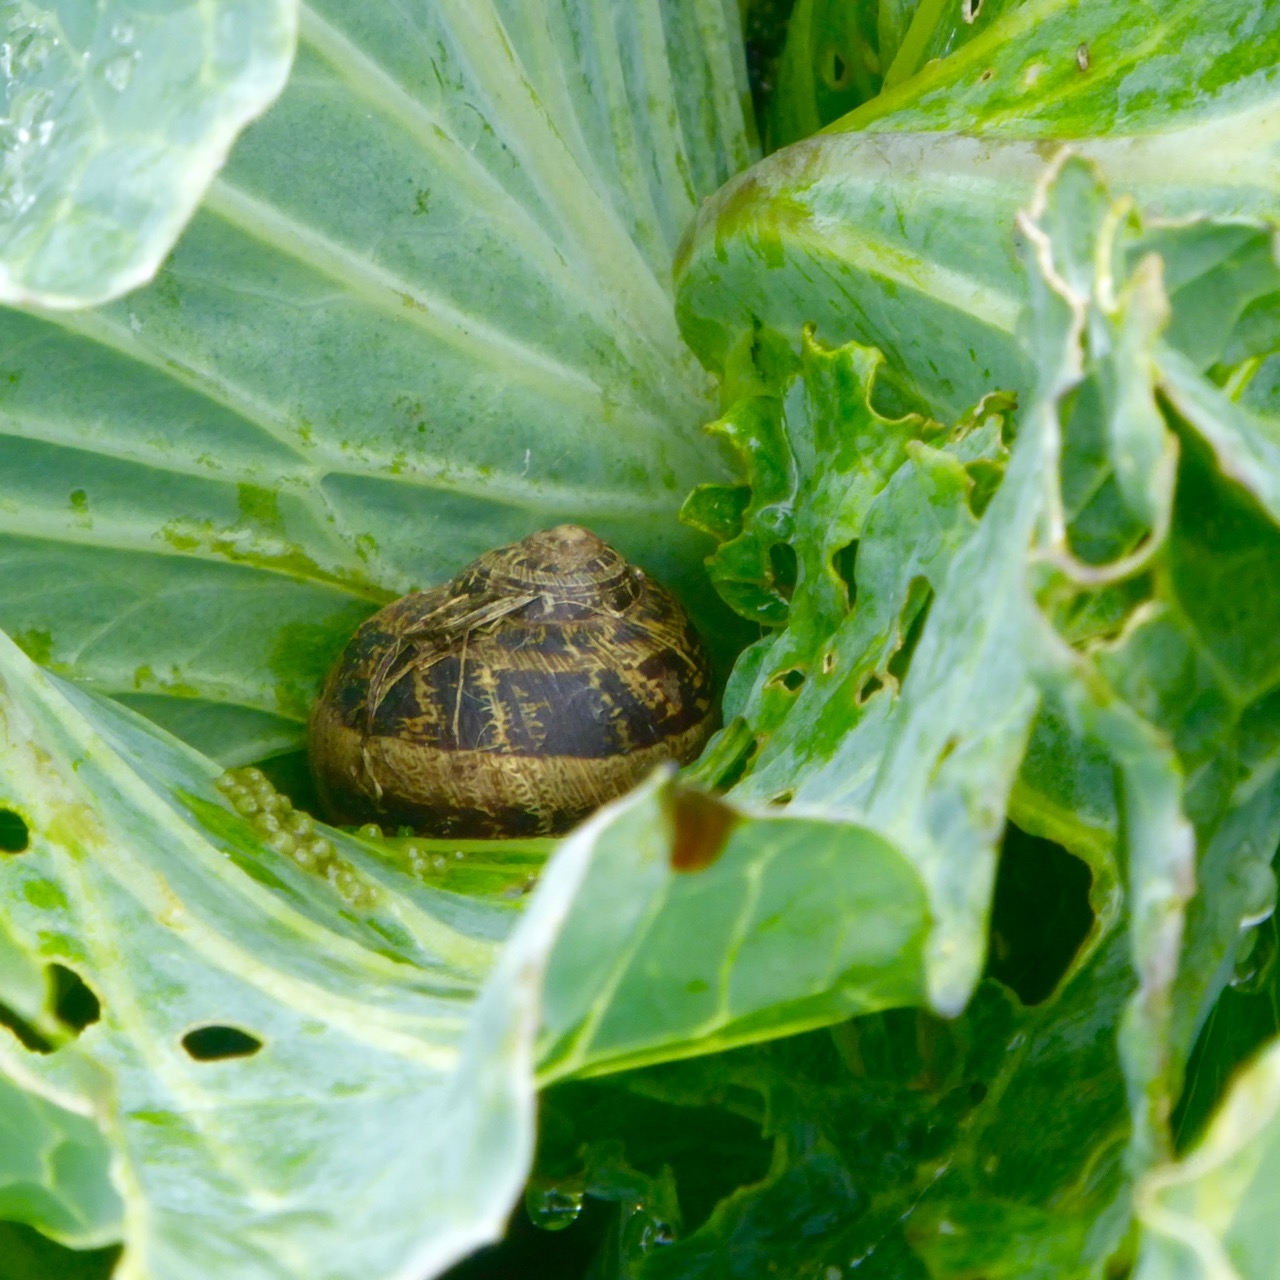 Snail on cabbage